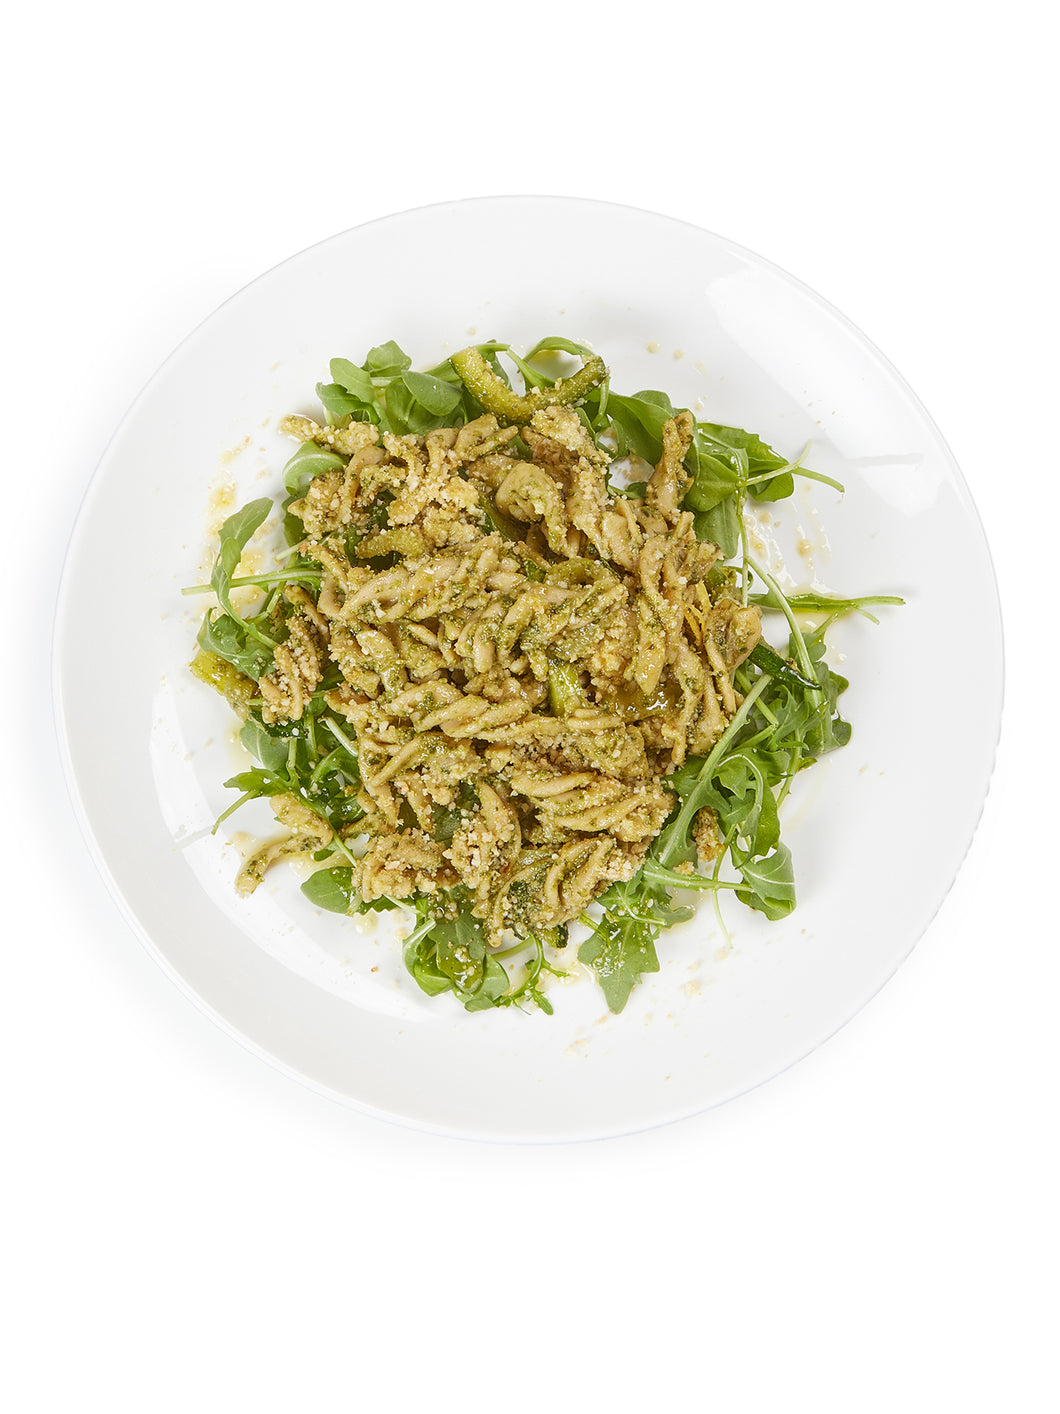 Mung Bean Fusilli with Kale Pesto